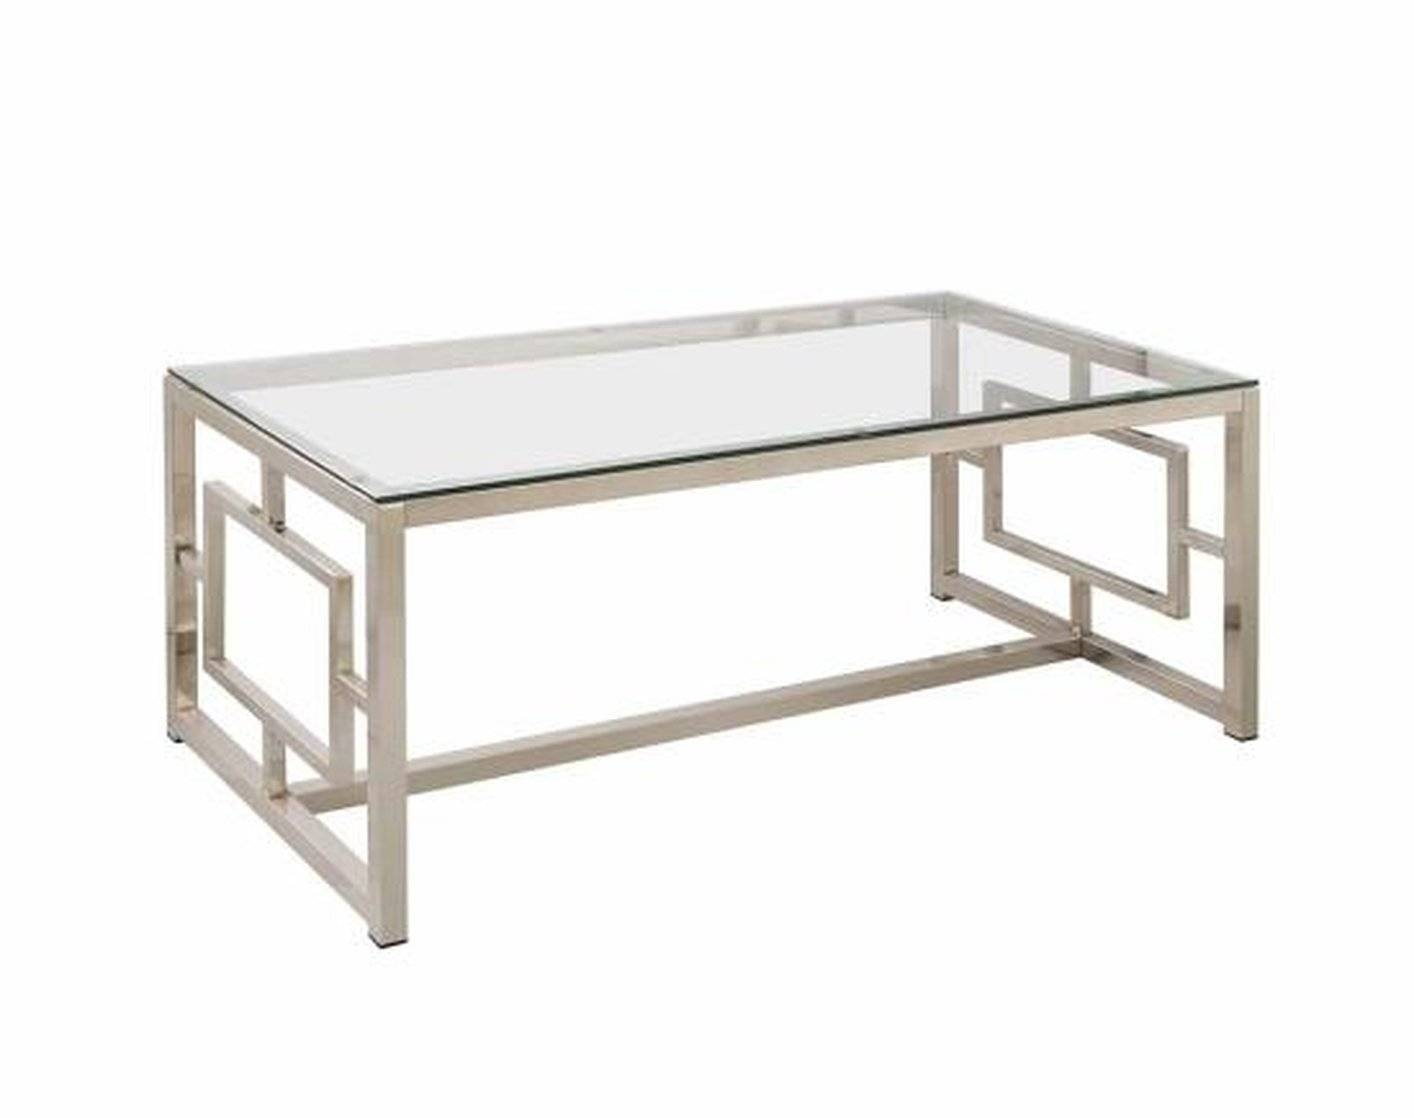 Coffee Table: Astounding Silver And Glass Coffee Table Ideas Throughout Steel And Glass Coffee Tables (View 5 of 30)